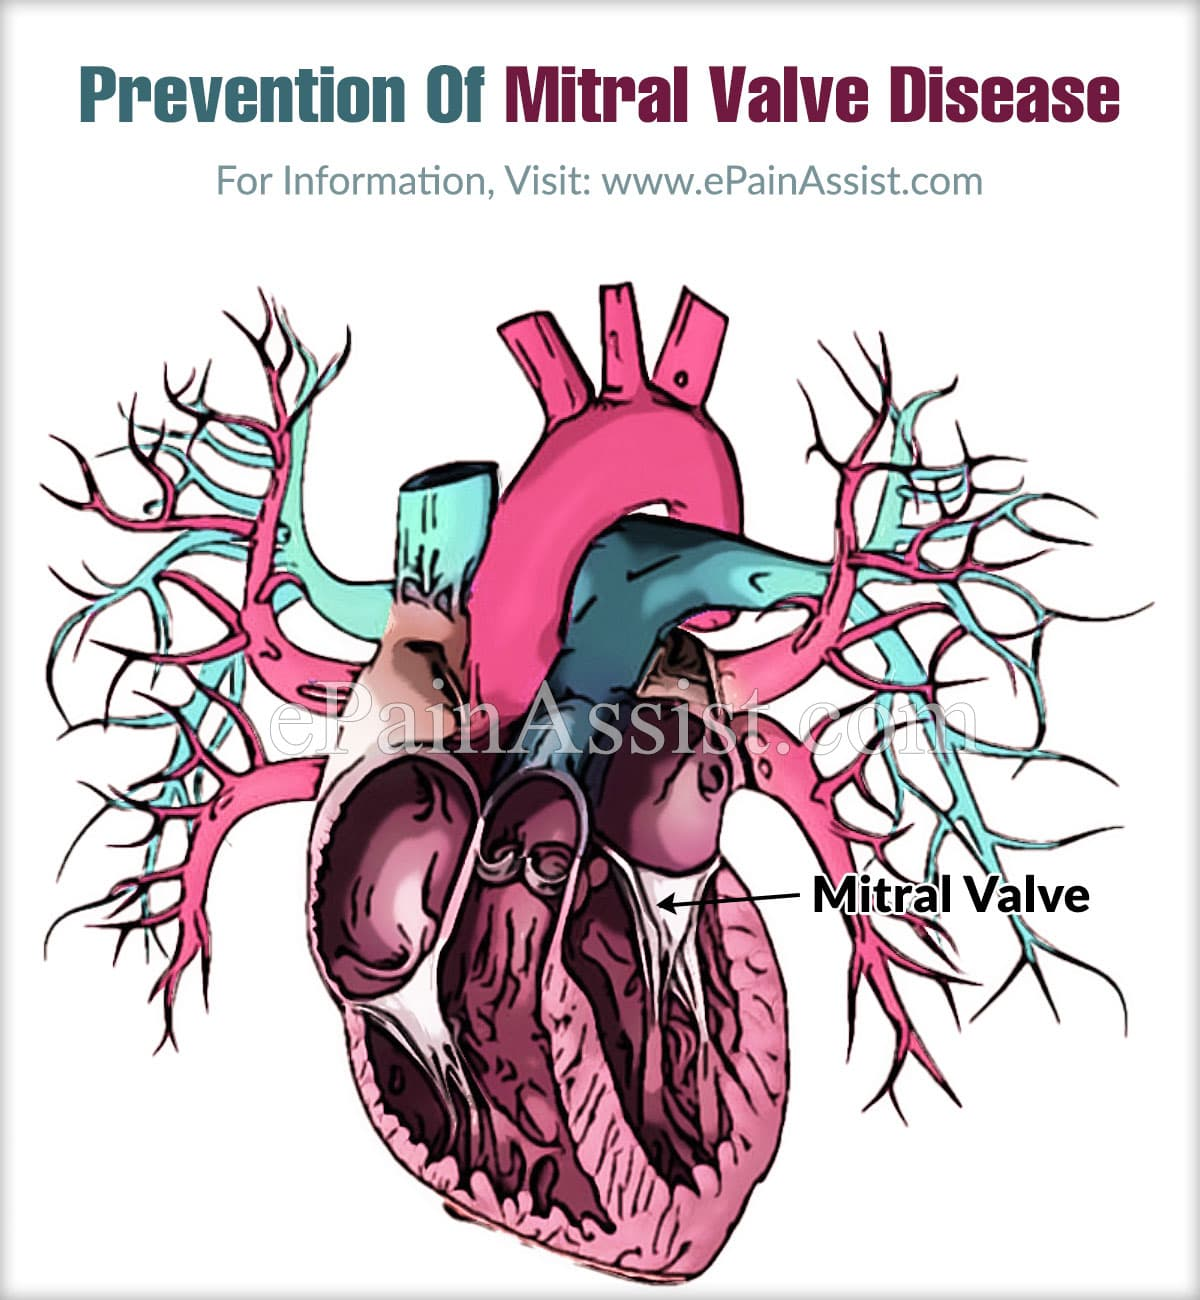 Prevention Of Mitral Valve Disease